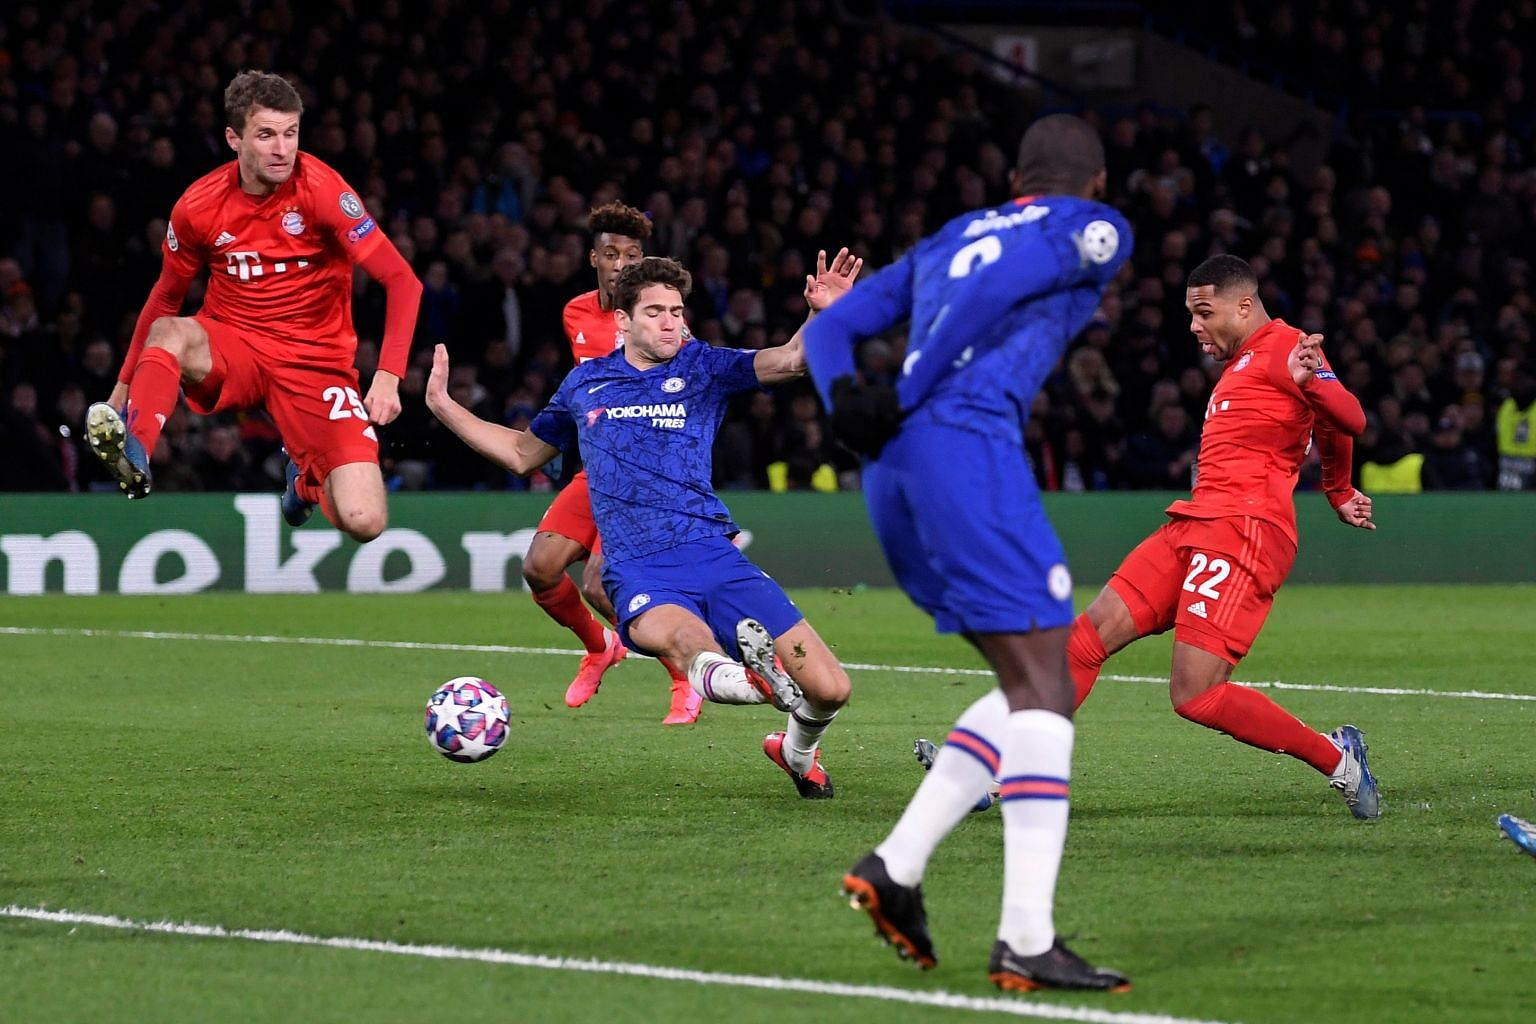 Bayern Munich's Serge Gnabry (far right) scoring the first of his two goals in the 3-0 win over Chelsea on Tuesday. The German winger is the first player in Champions League history to score his first six goals against sides from the same nation. He